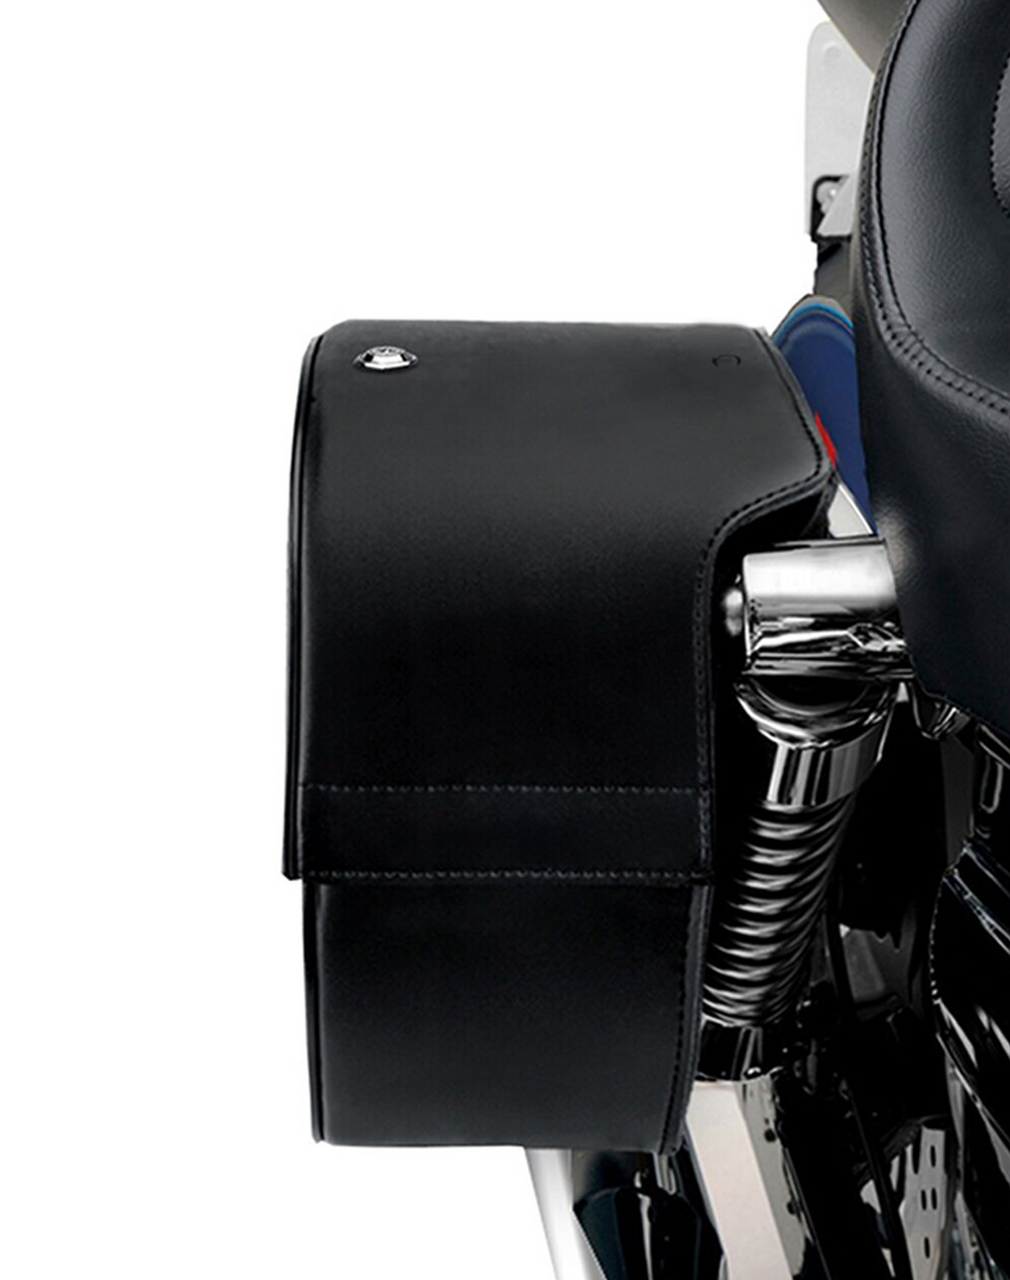 Viking Shock Cutout Large Motorcycle Saddlebags For Harley Sportster Seventy Two 72 Shock cutout view